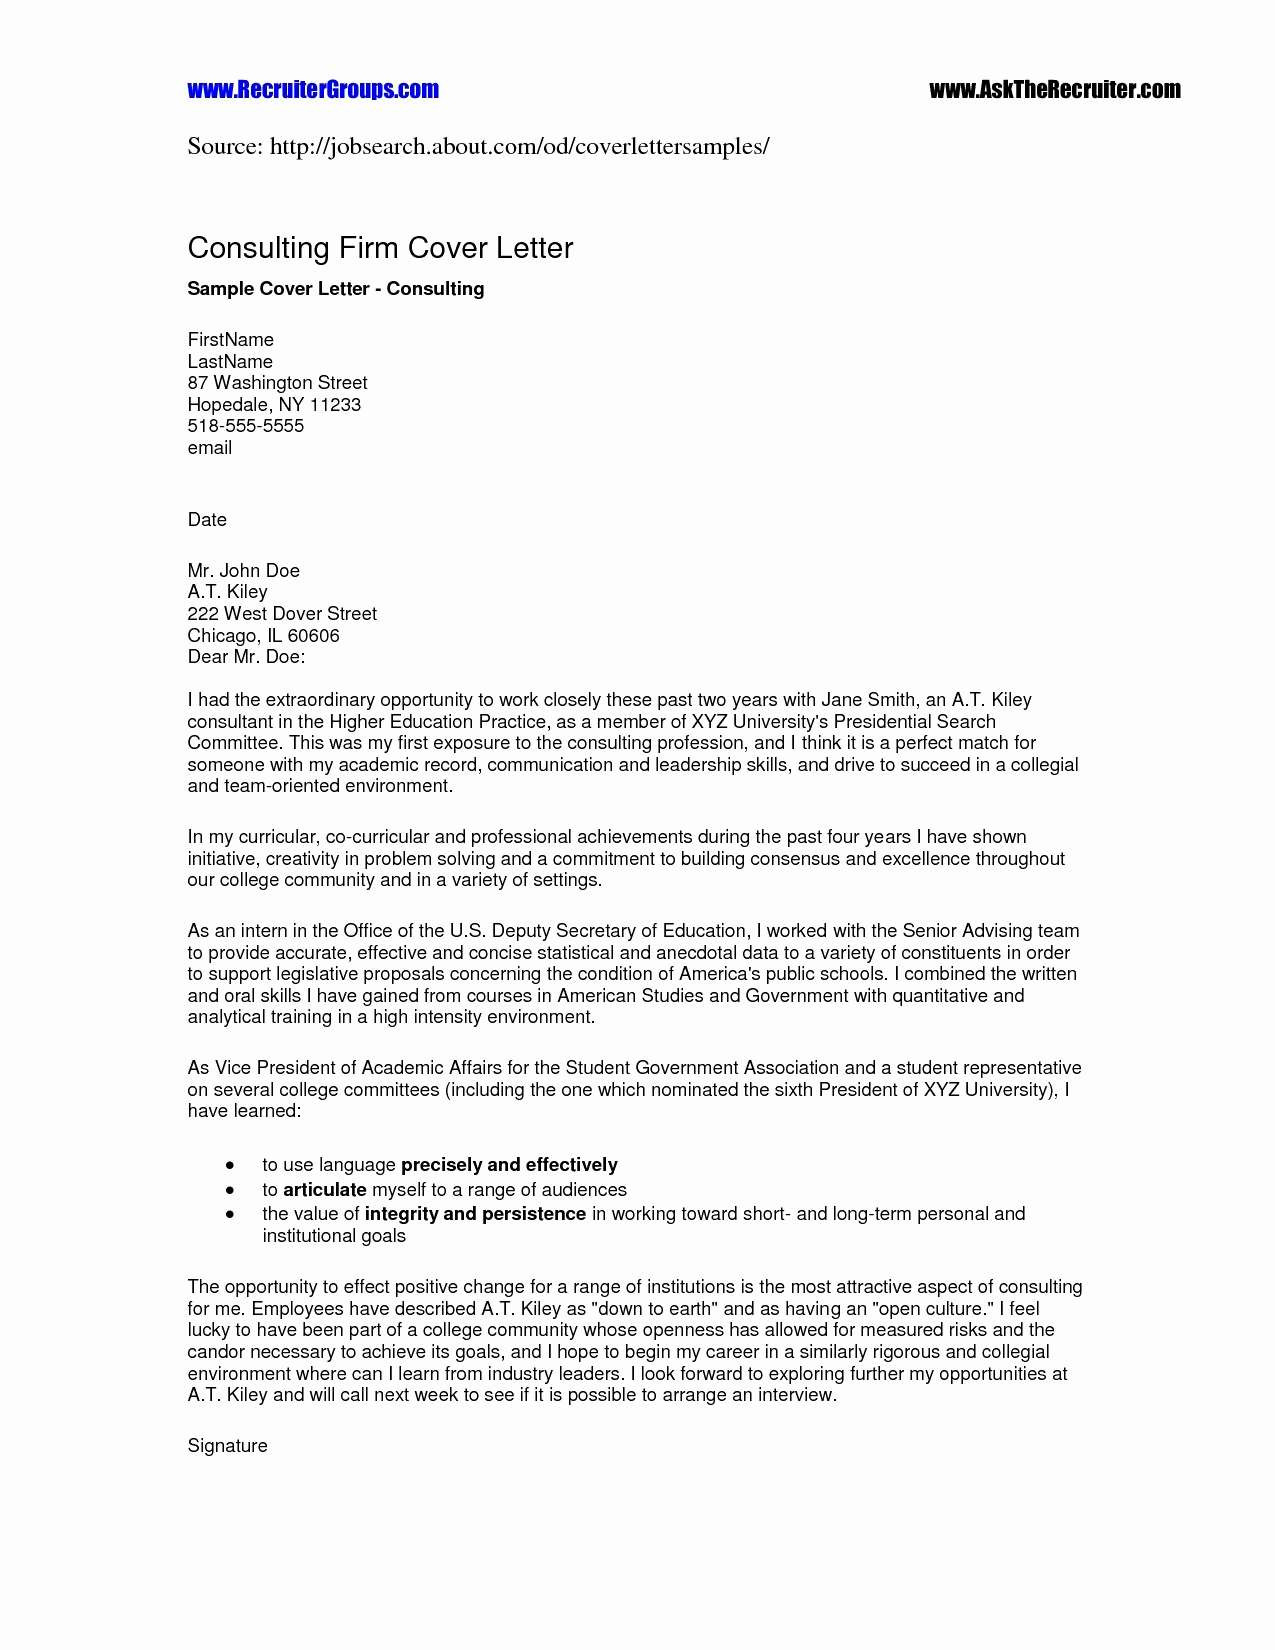 Microsoft Word Resume Cover Letter Template - Teacher Resume Templates Microsoft Word 2007 Fresh Modern Resume